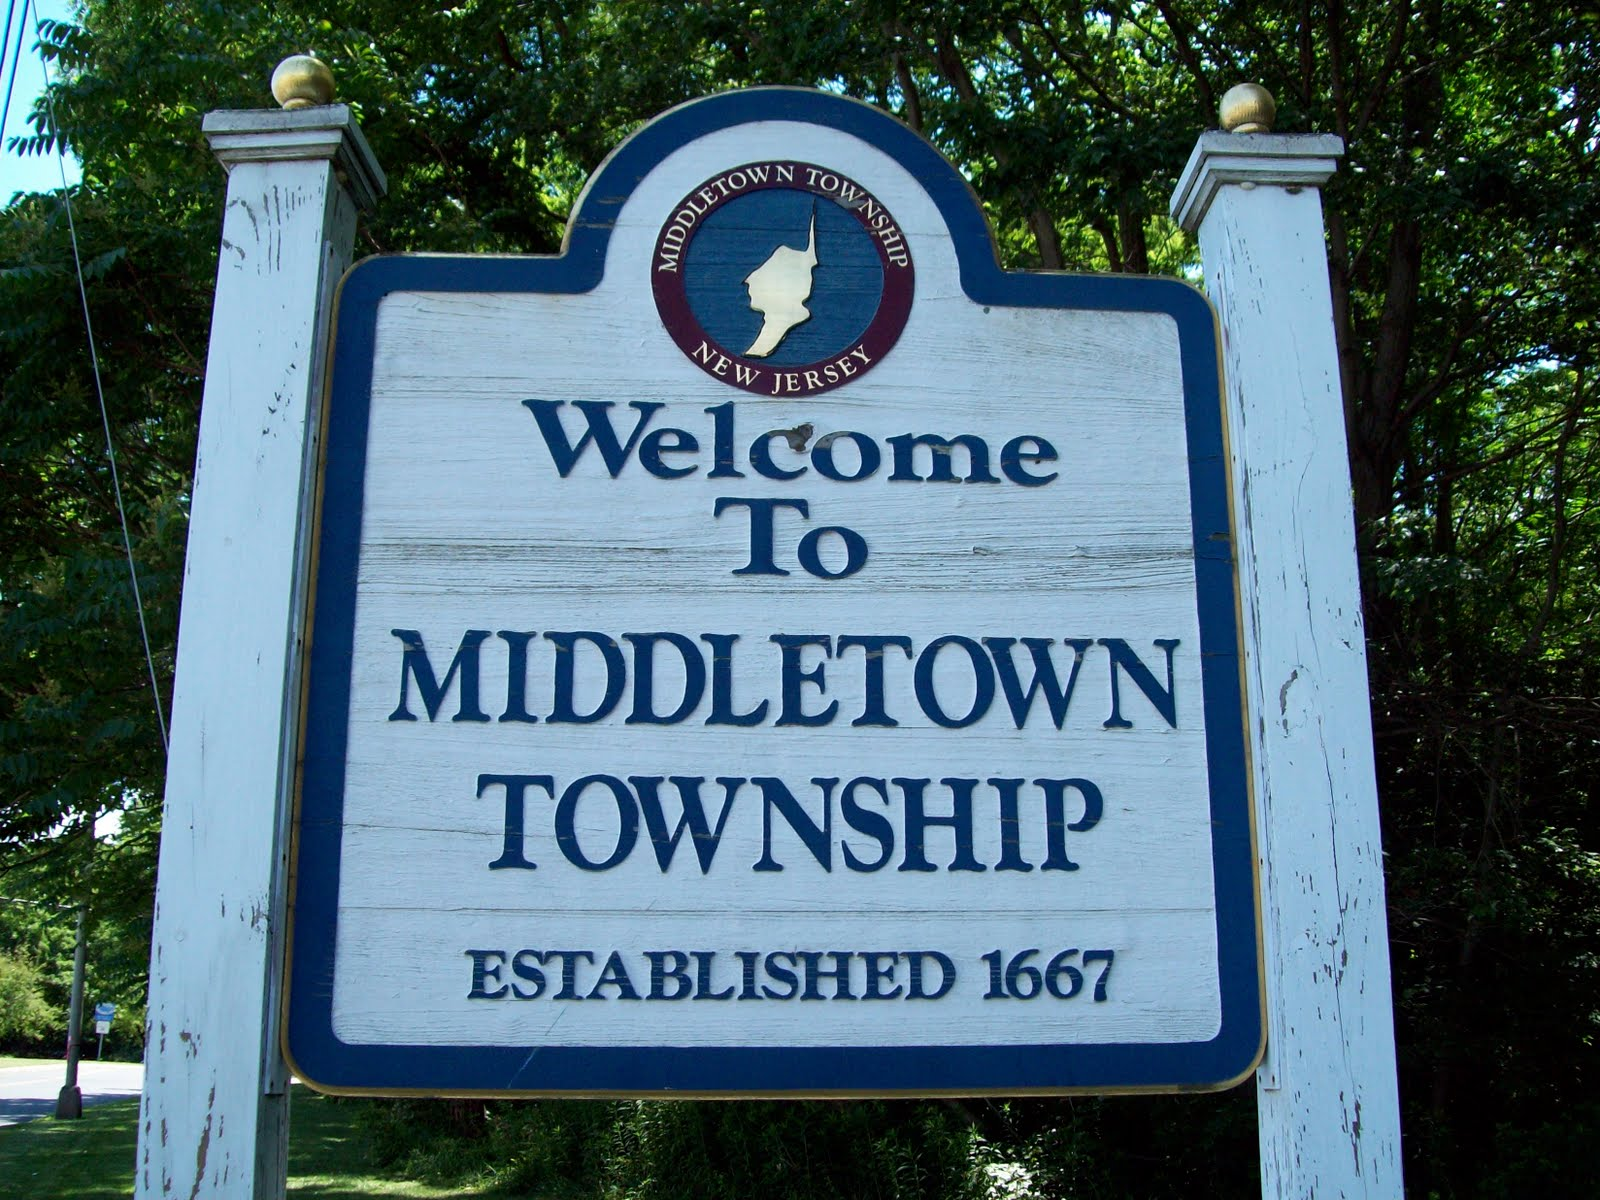 middletown township buddhist personals Town by town: some of everything updated: middletown township ideal for singles and young couples looking in the $250,000-to-$350,000 range, she says.